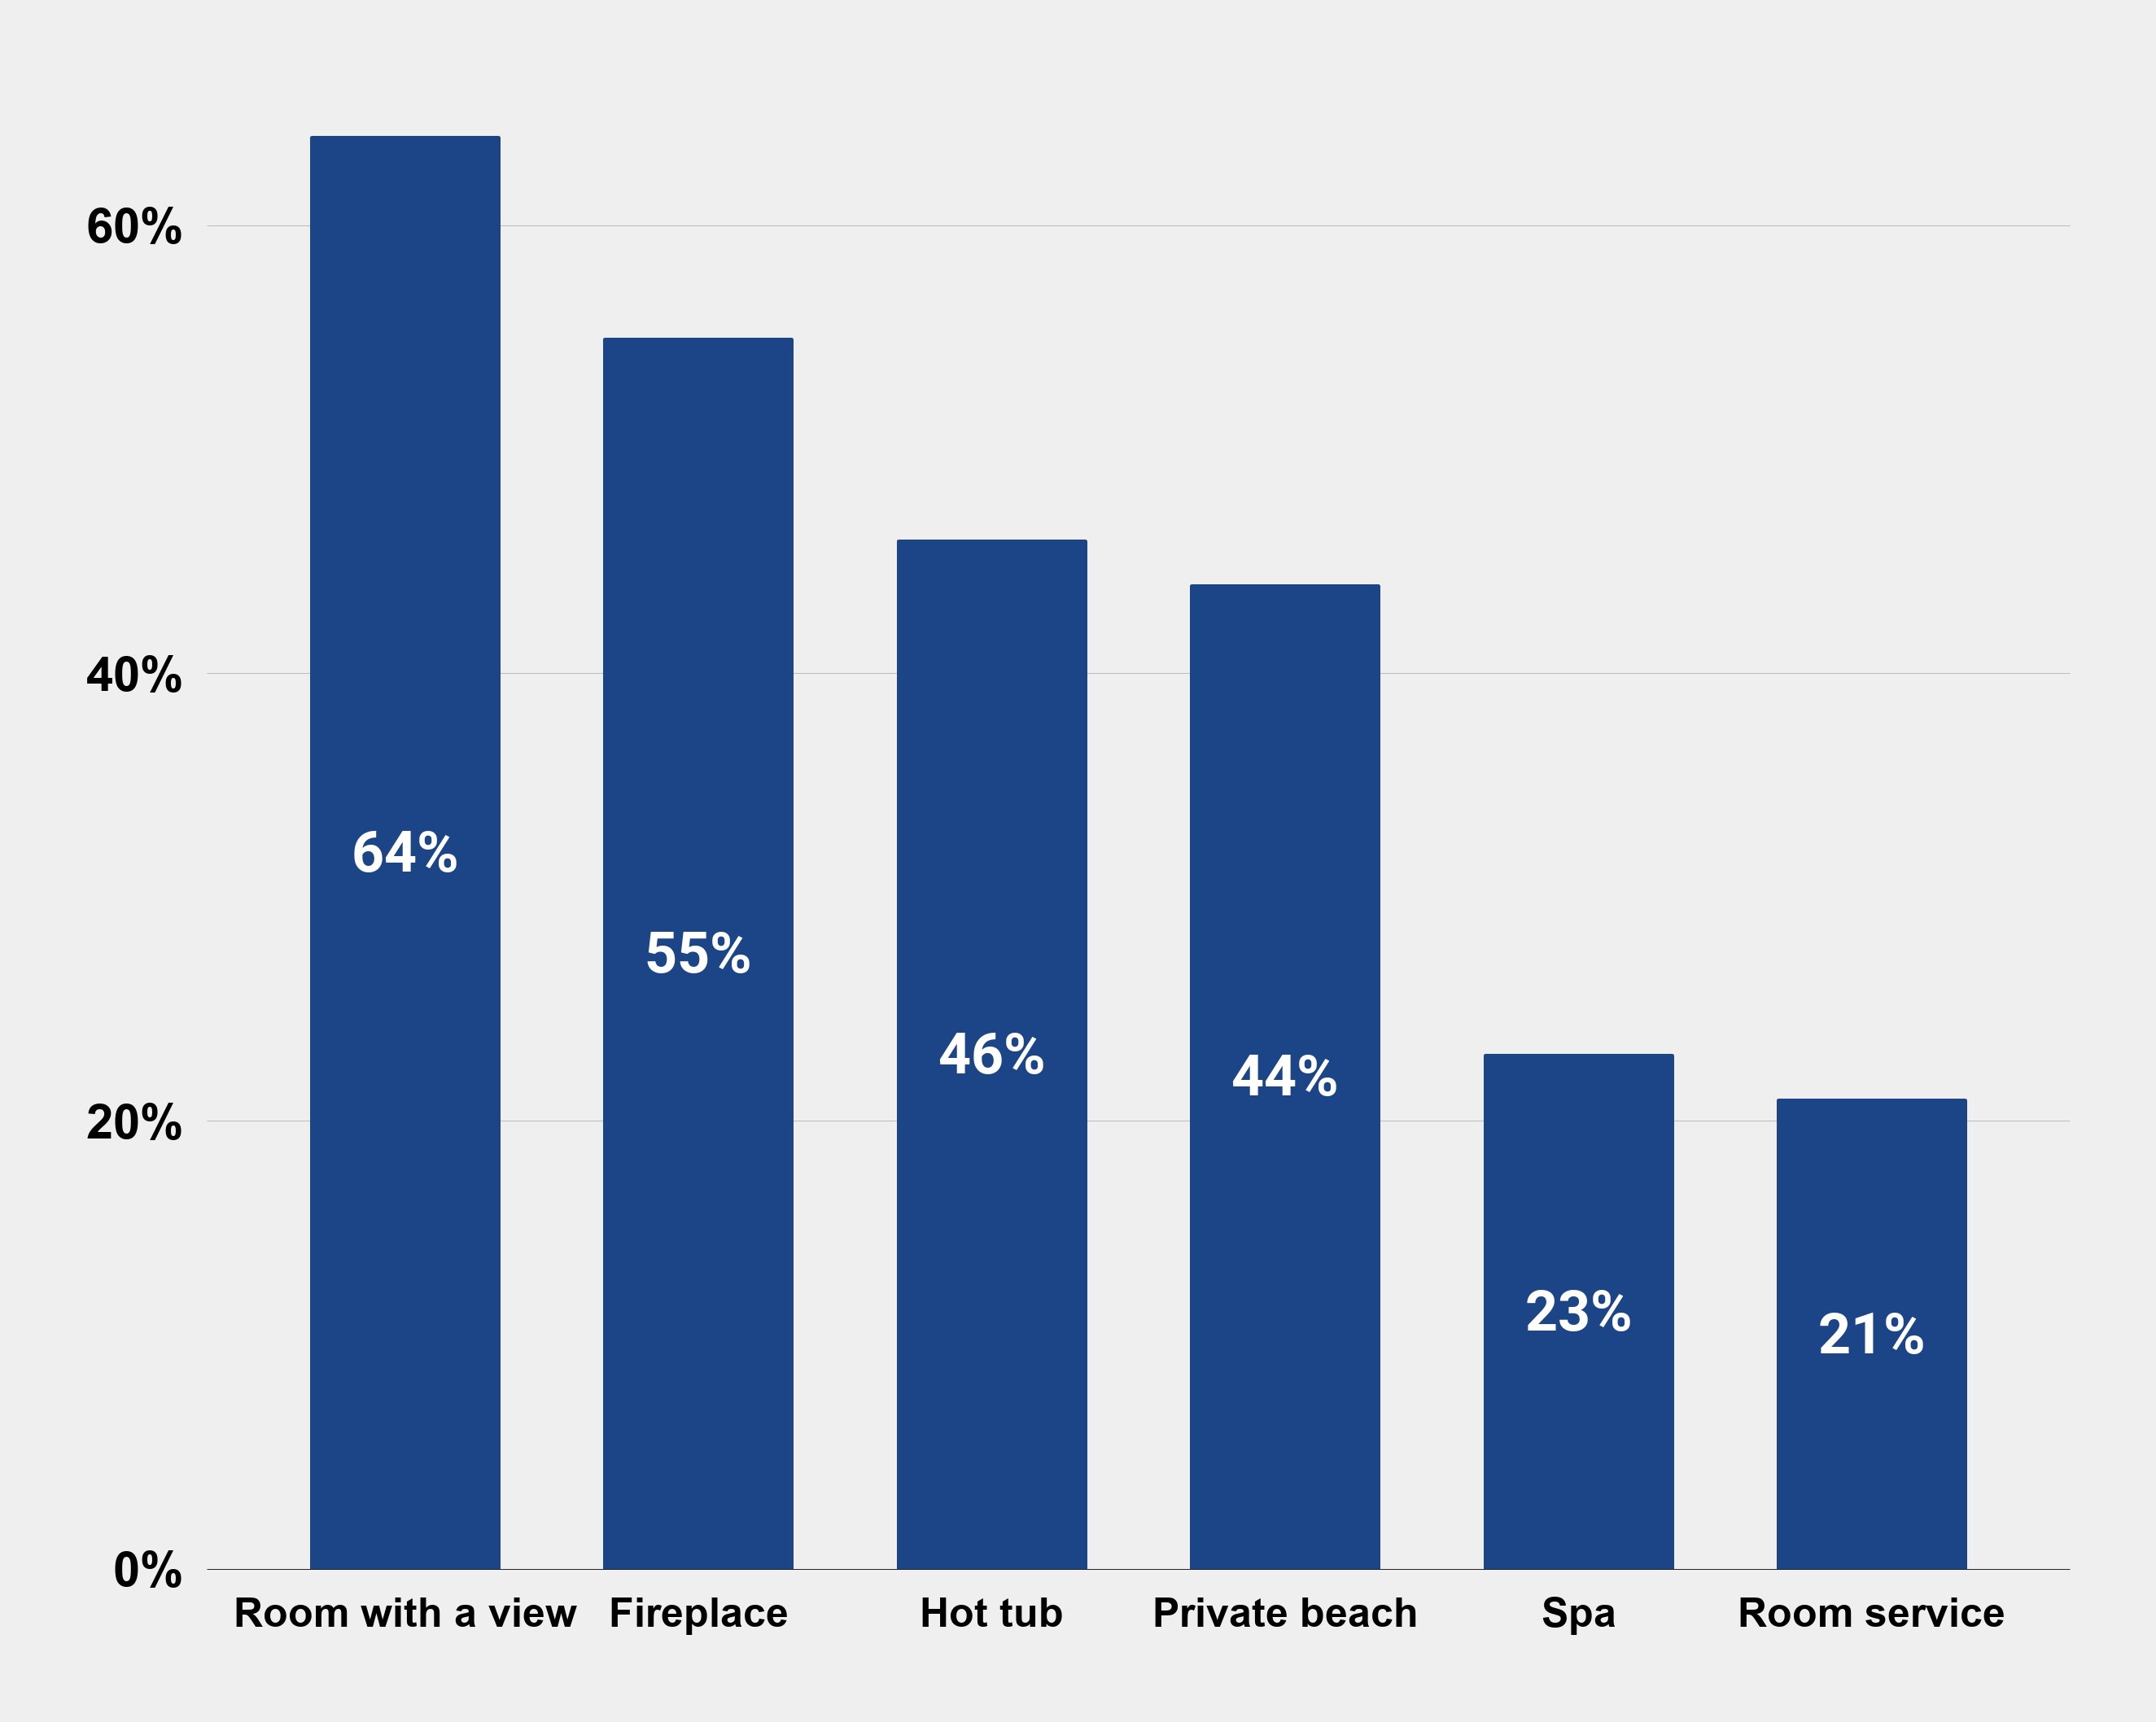 Most romantic hotel features according to US travelers as of Jan. 2015 Graphs Charts Stats